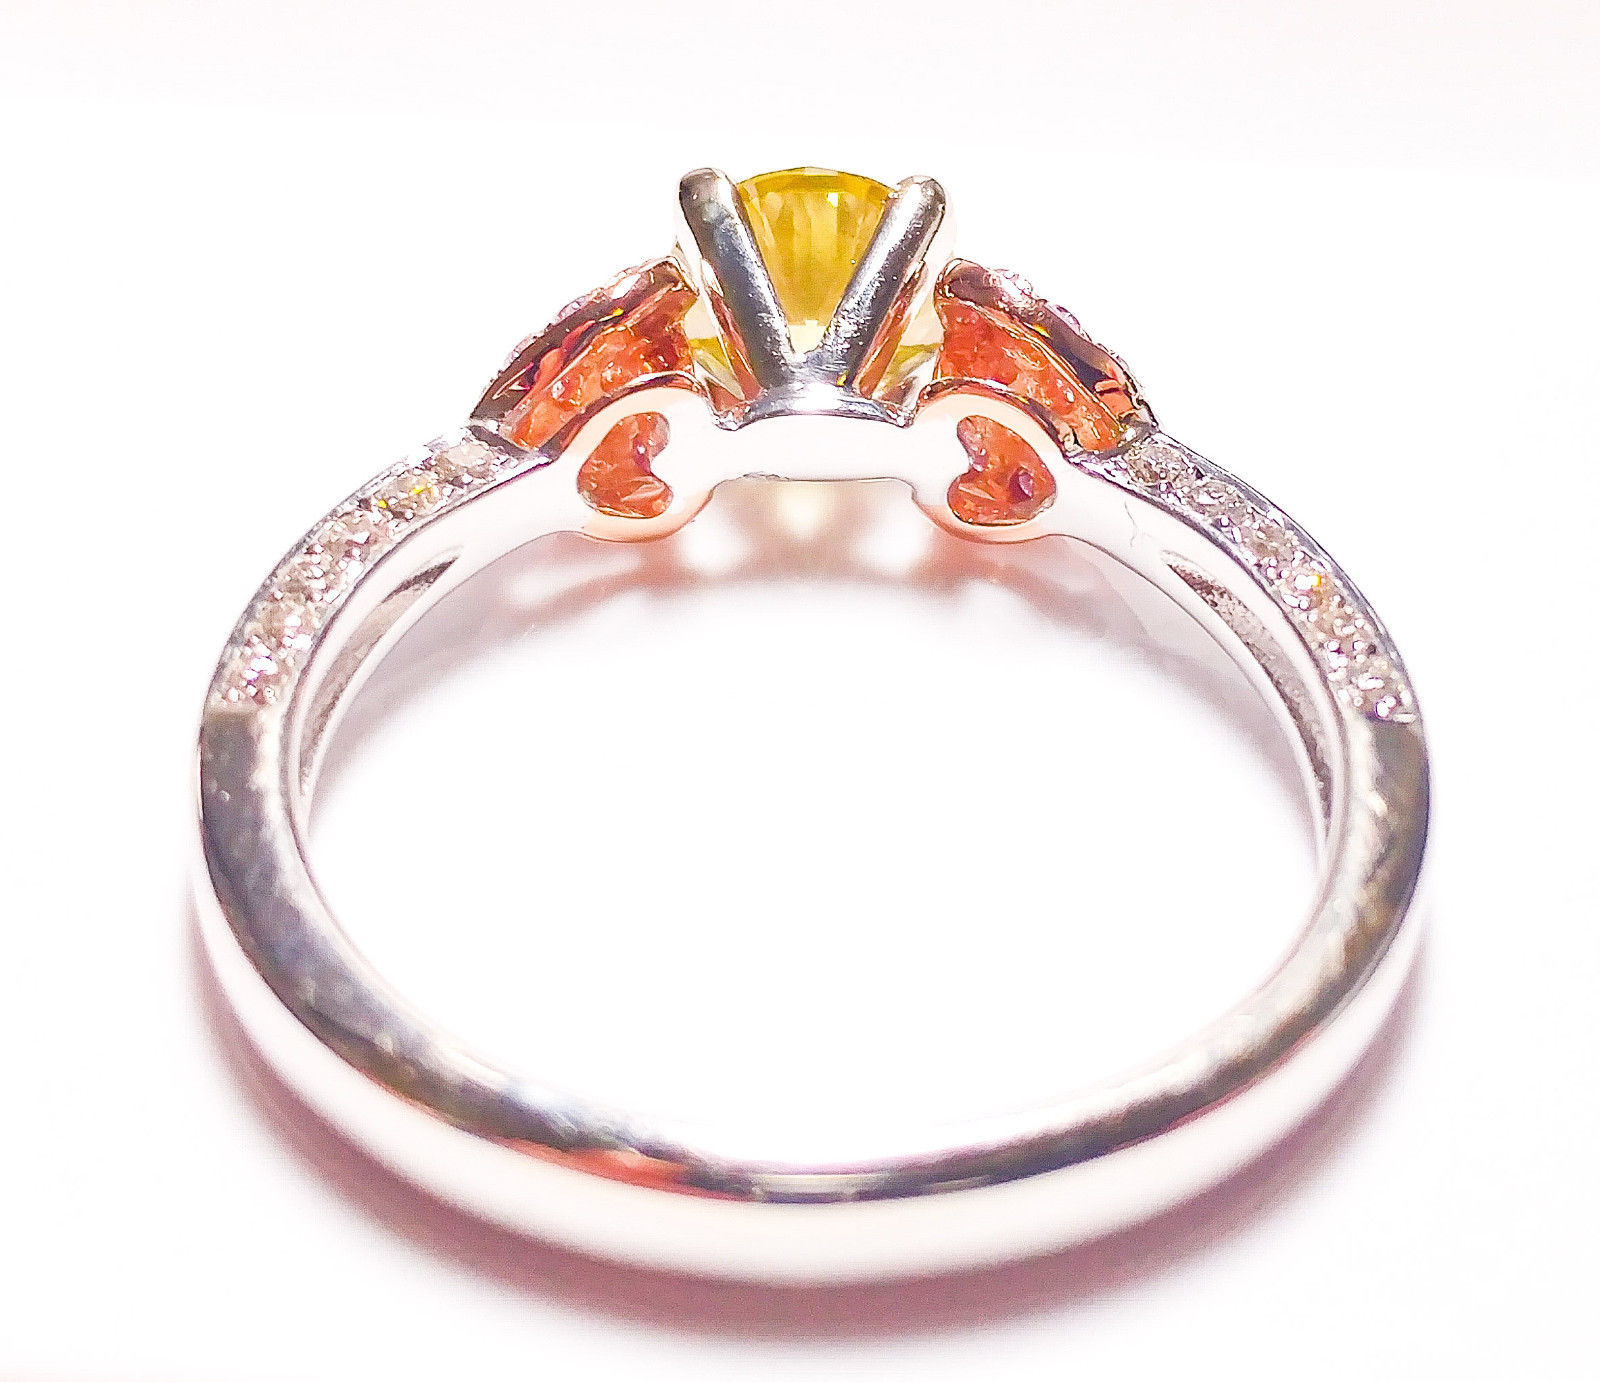 glamour rings weddings gallery rose main ring amber engagement celebrity